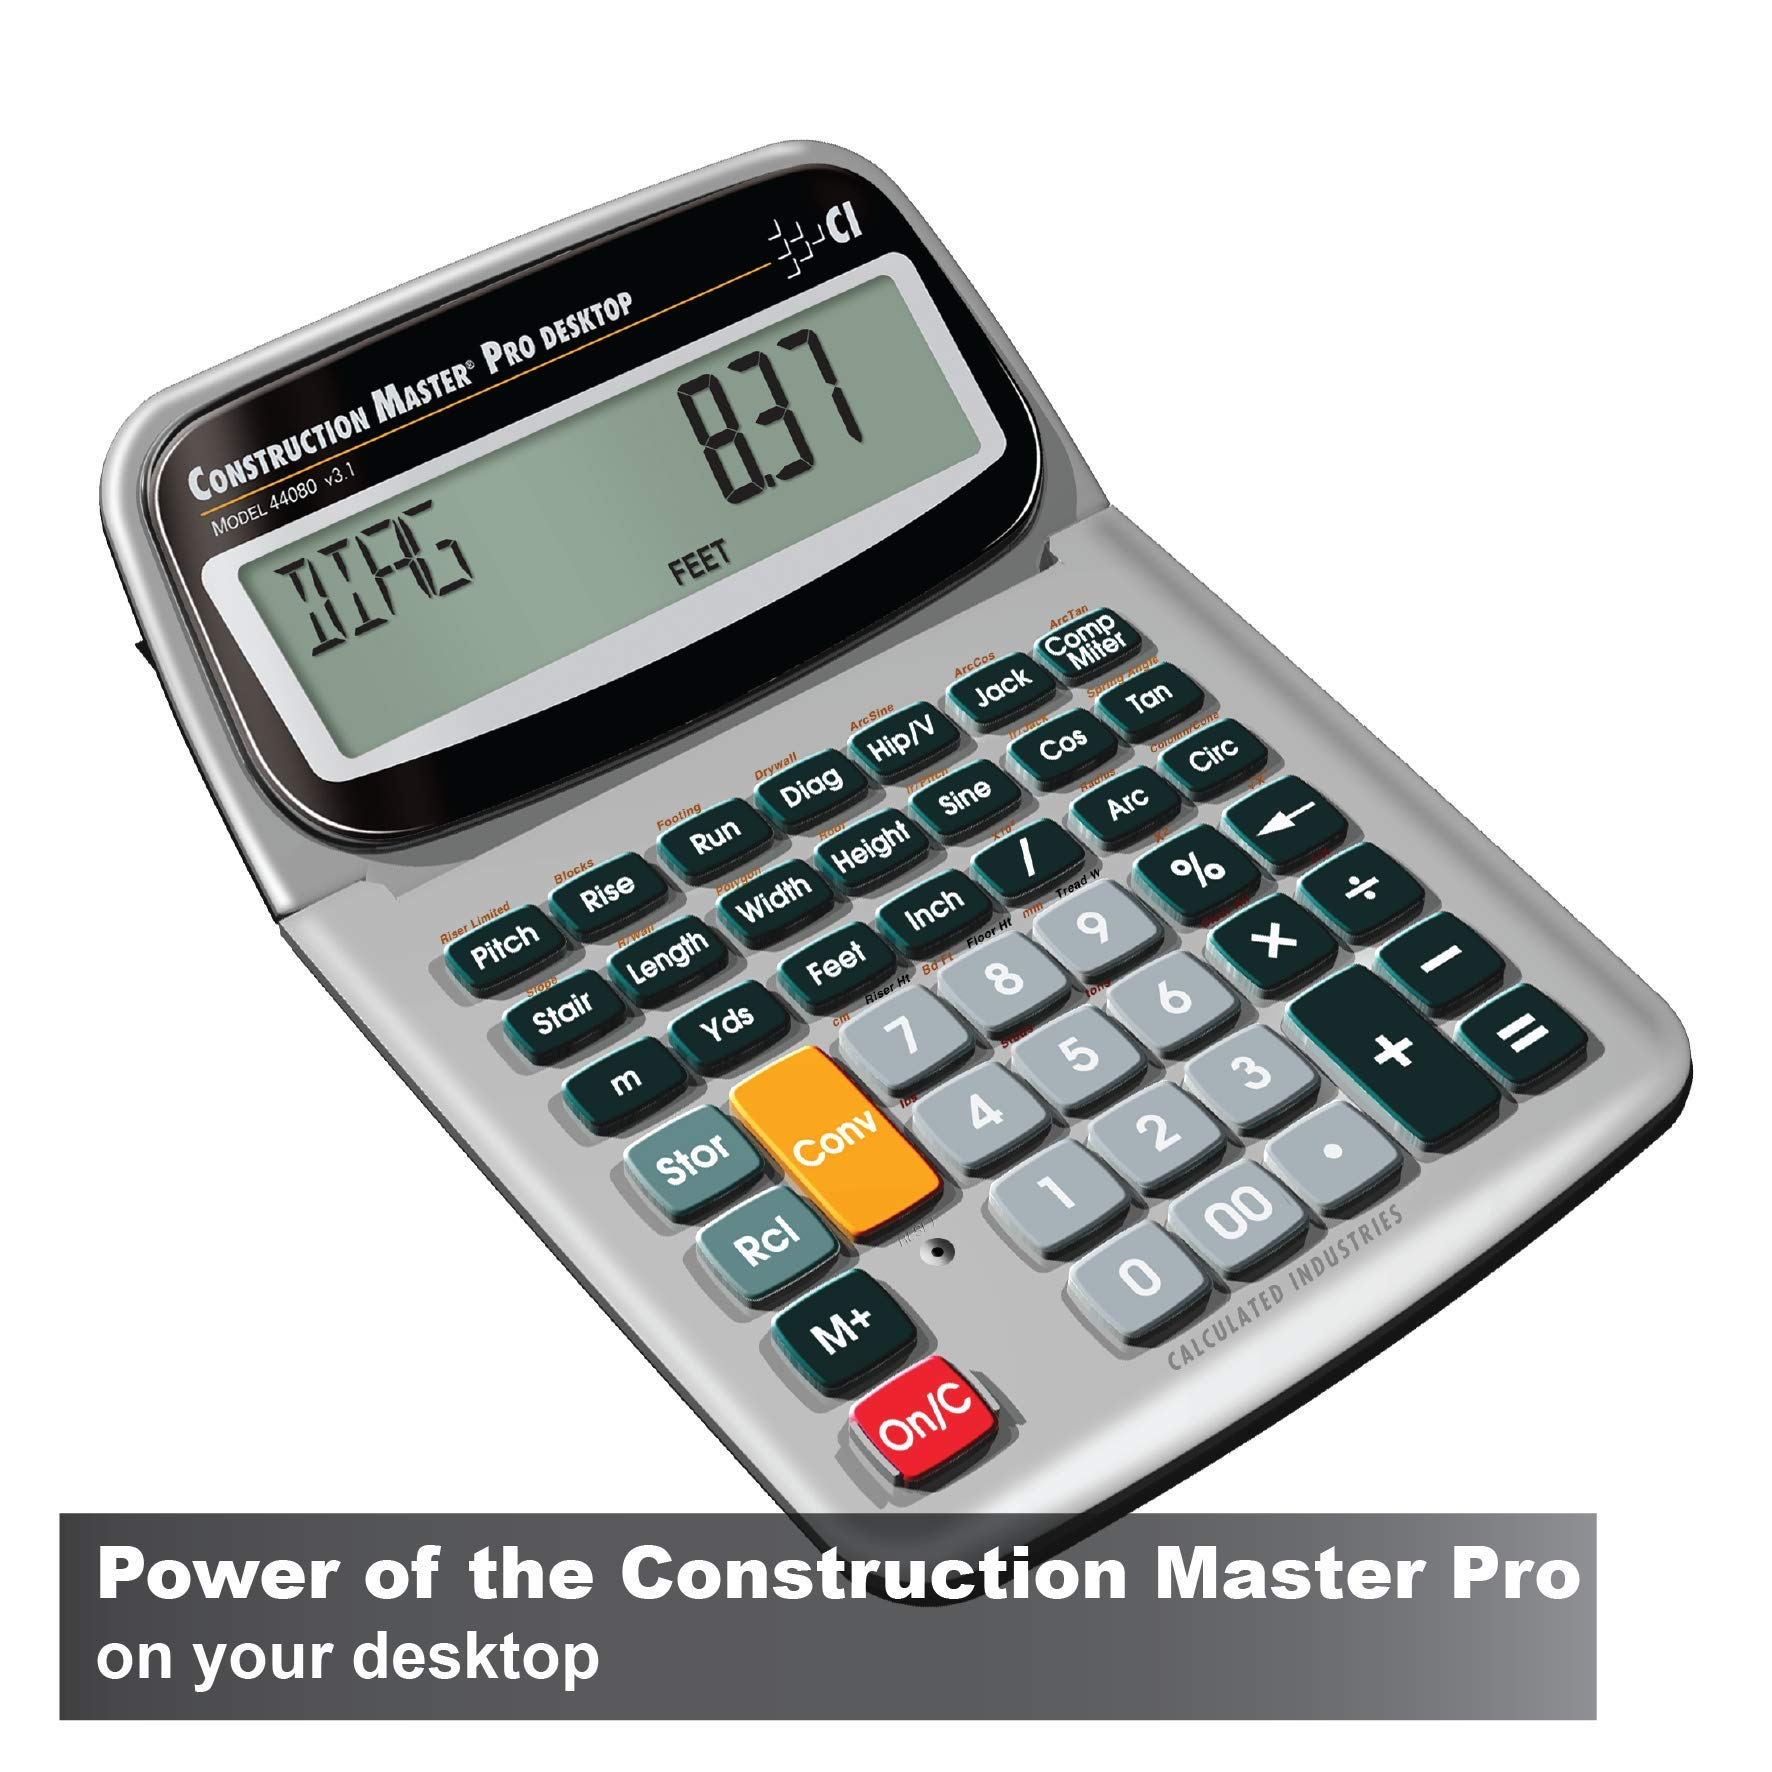 Calculated Industries 44080 Construction Master Pro Construction Calculator by Calculated Industries